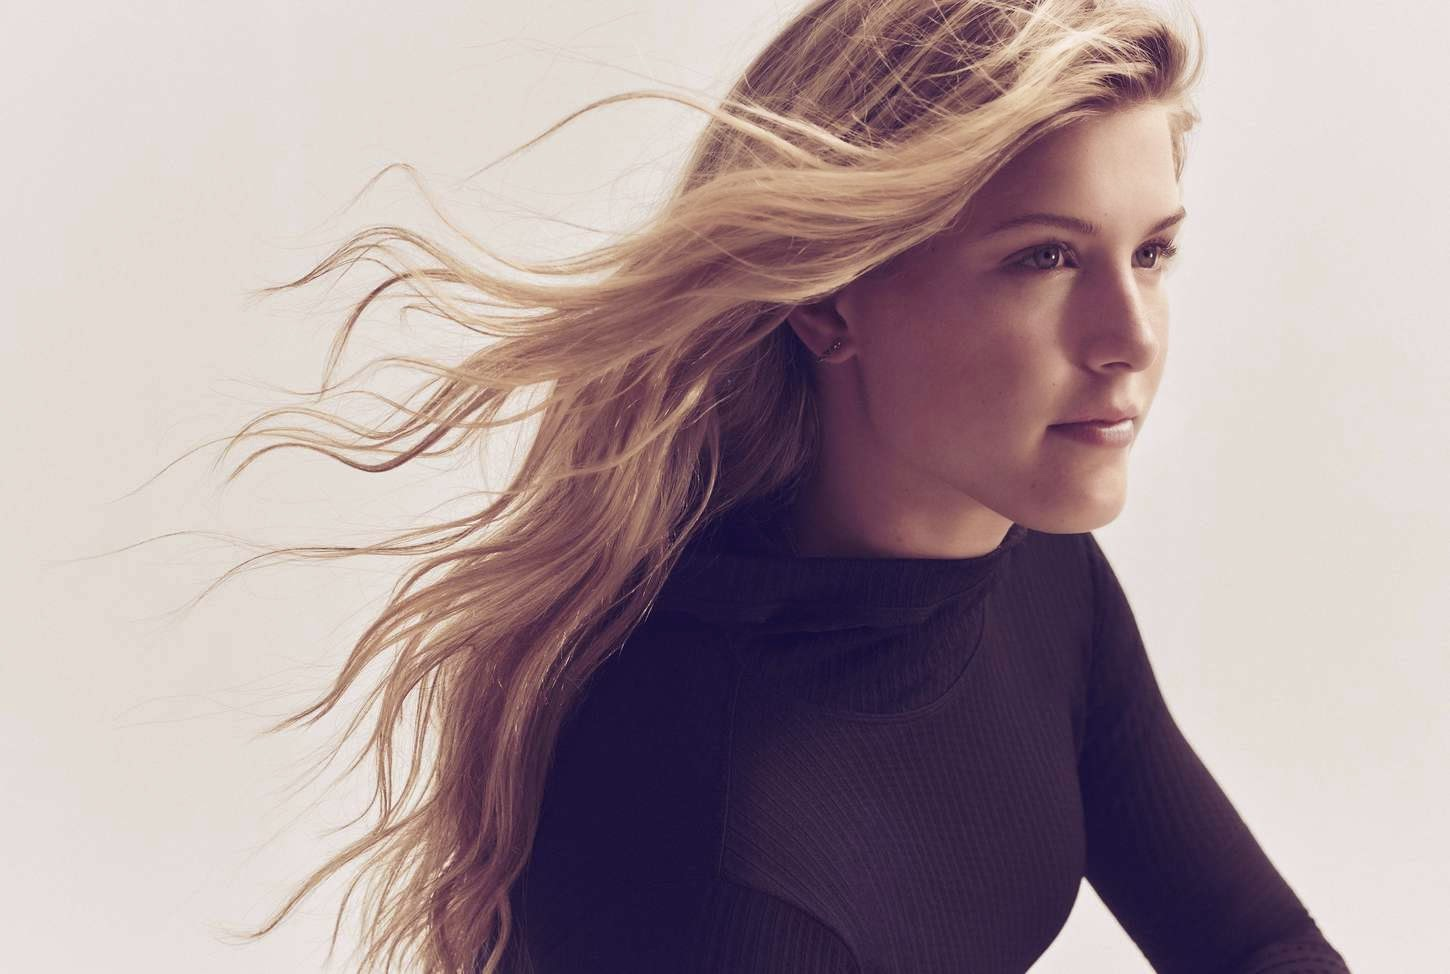 Eugenie Bouchard – Nike Legendary Lava Tight Campaign 2015